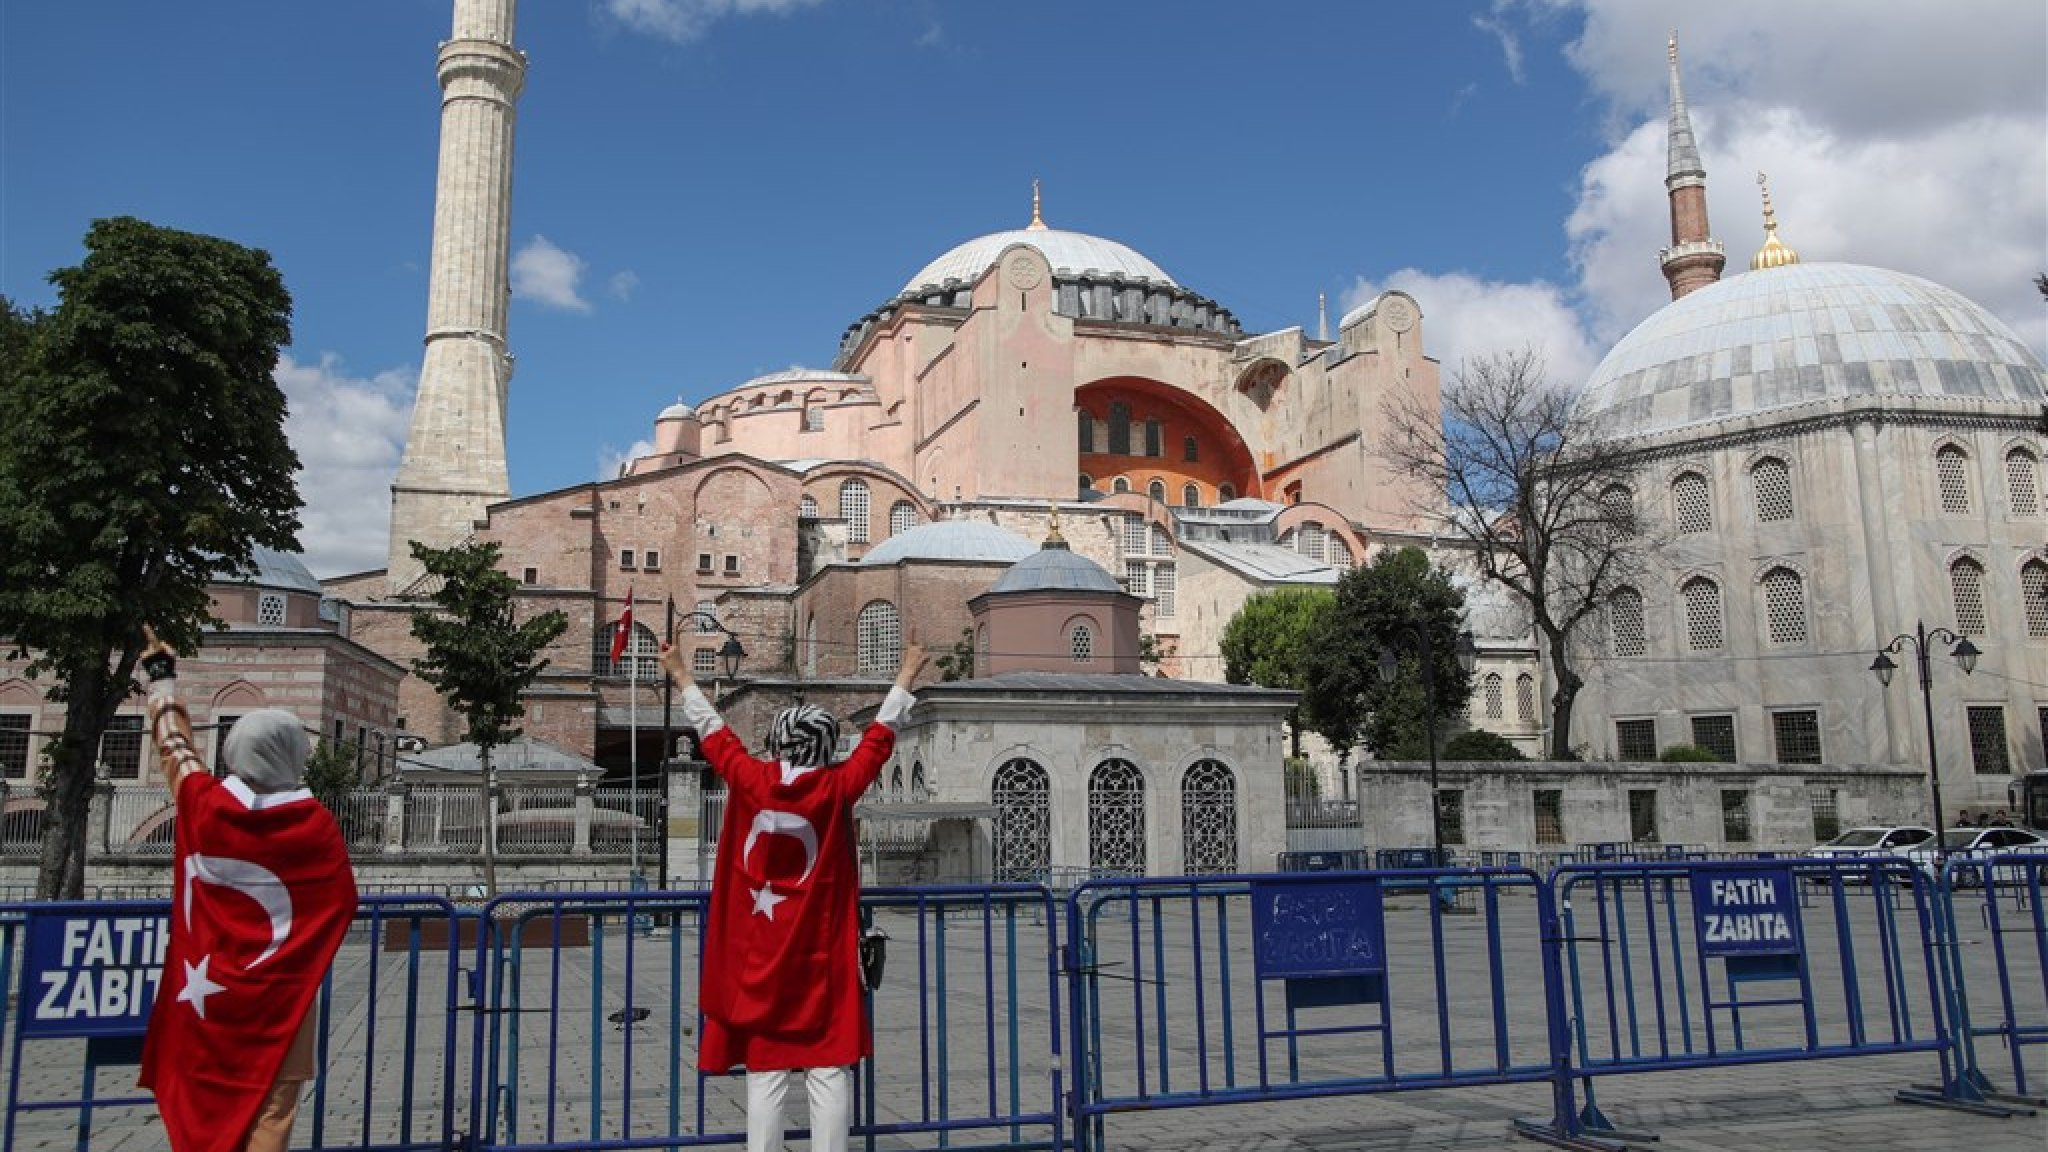 The originally Christian cathedral is a popular tourist attraction in Istanbul. The idea of turning it into a mosque comes from President Erdoga